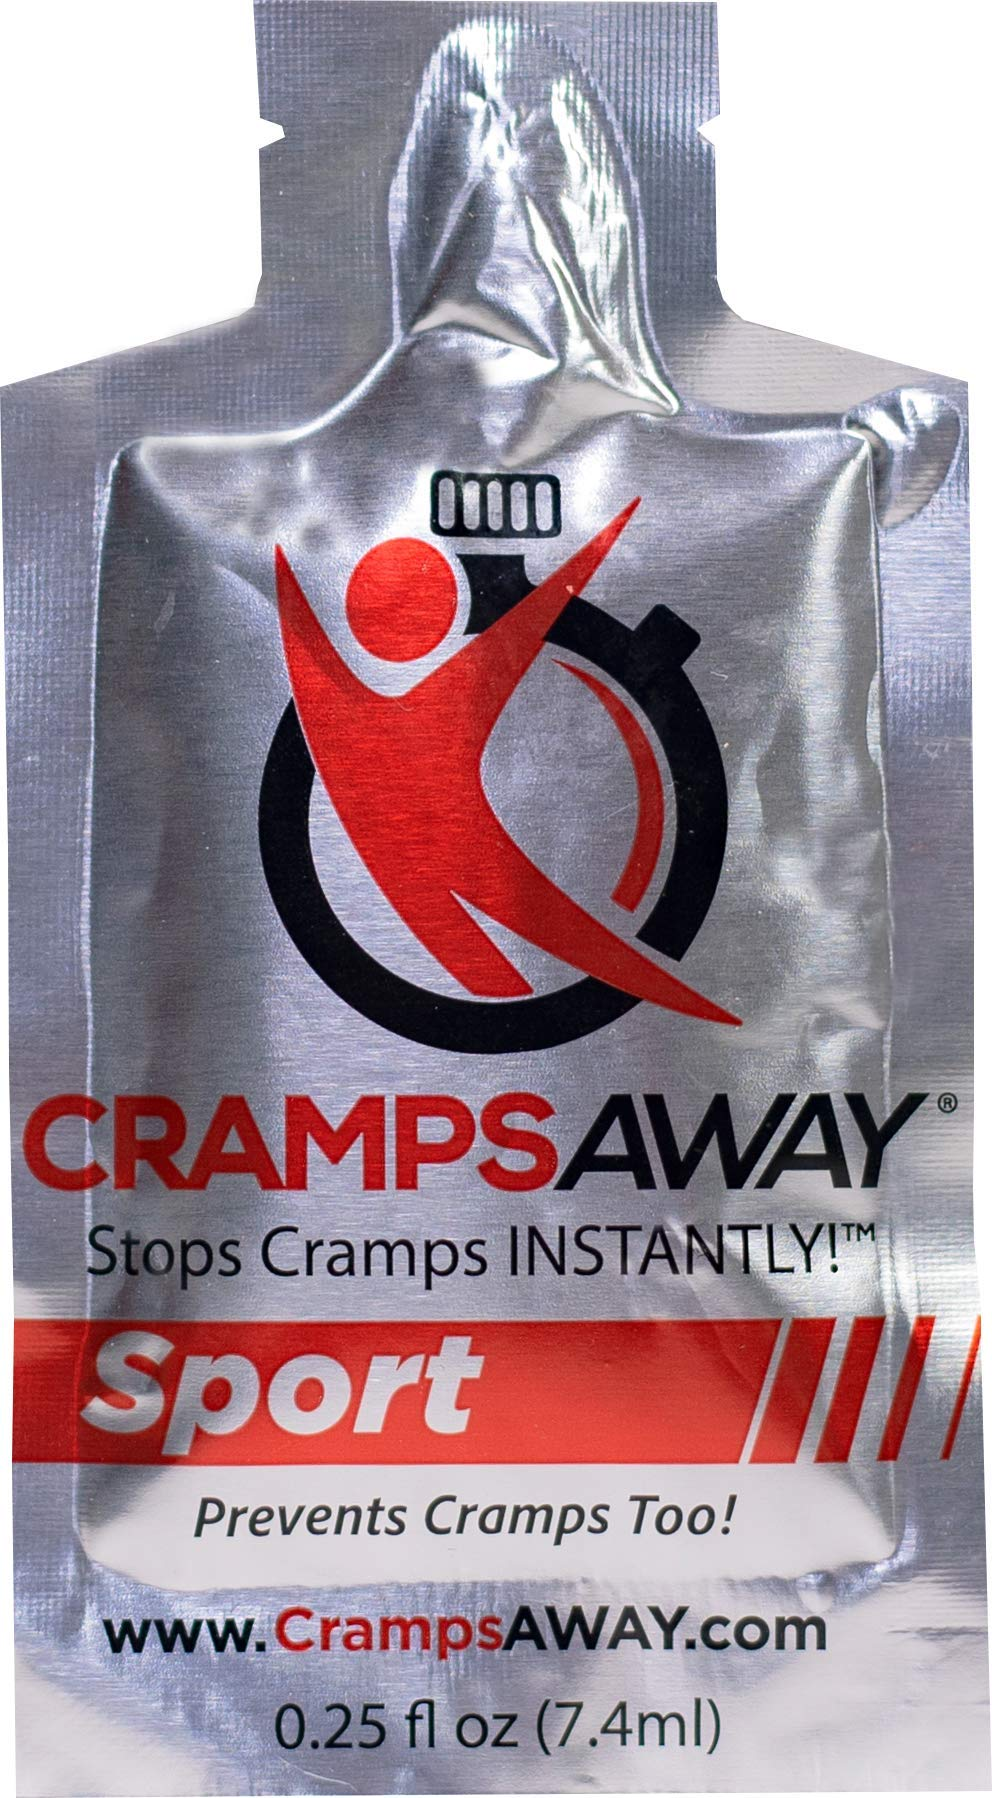 CrampsAWAY Sport - 20 Pack (Best Value) / All Natural, Instant Relief for Muscle Cramps, Including Leg, Foot, Calf, Hand and Night Cramps Too. by CrampsAWAY